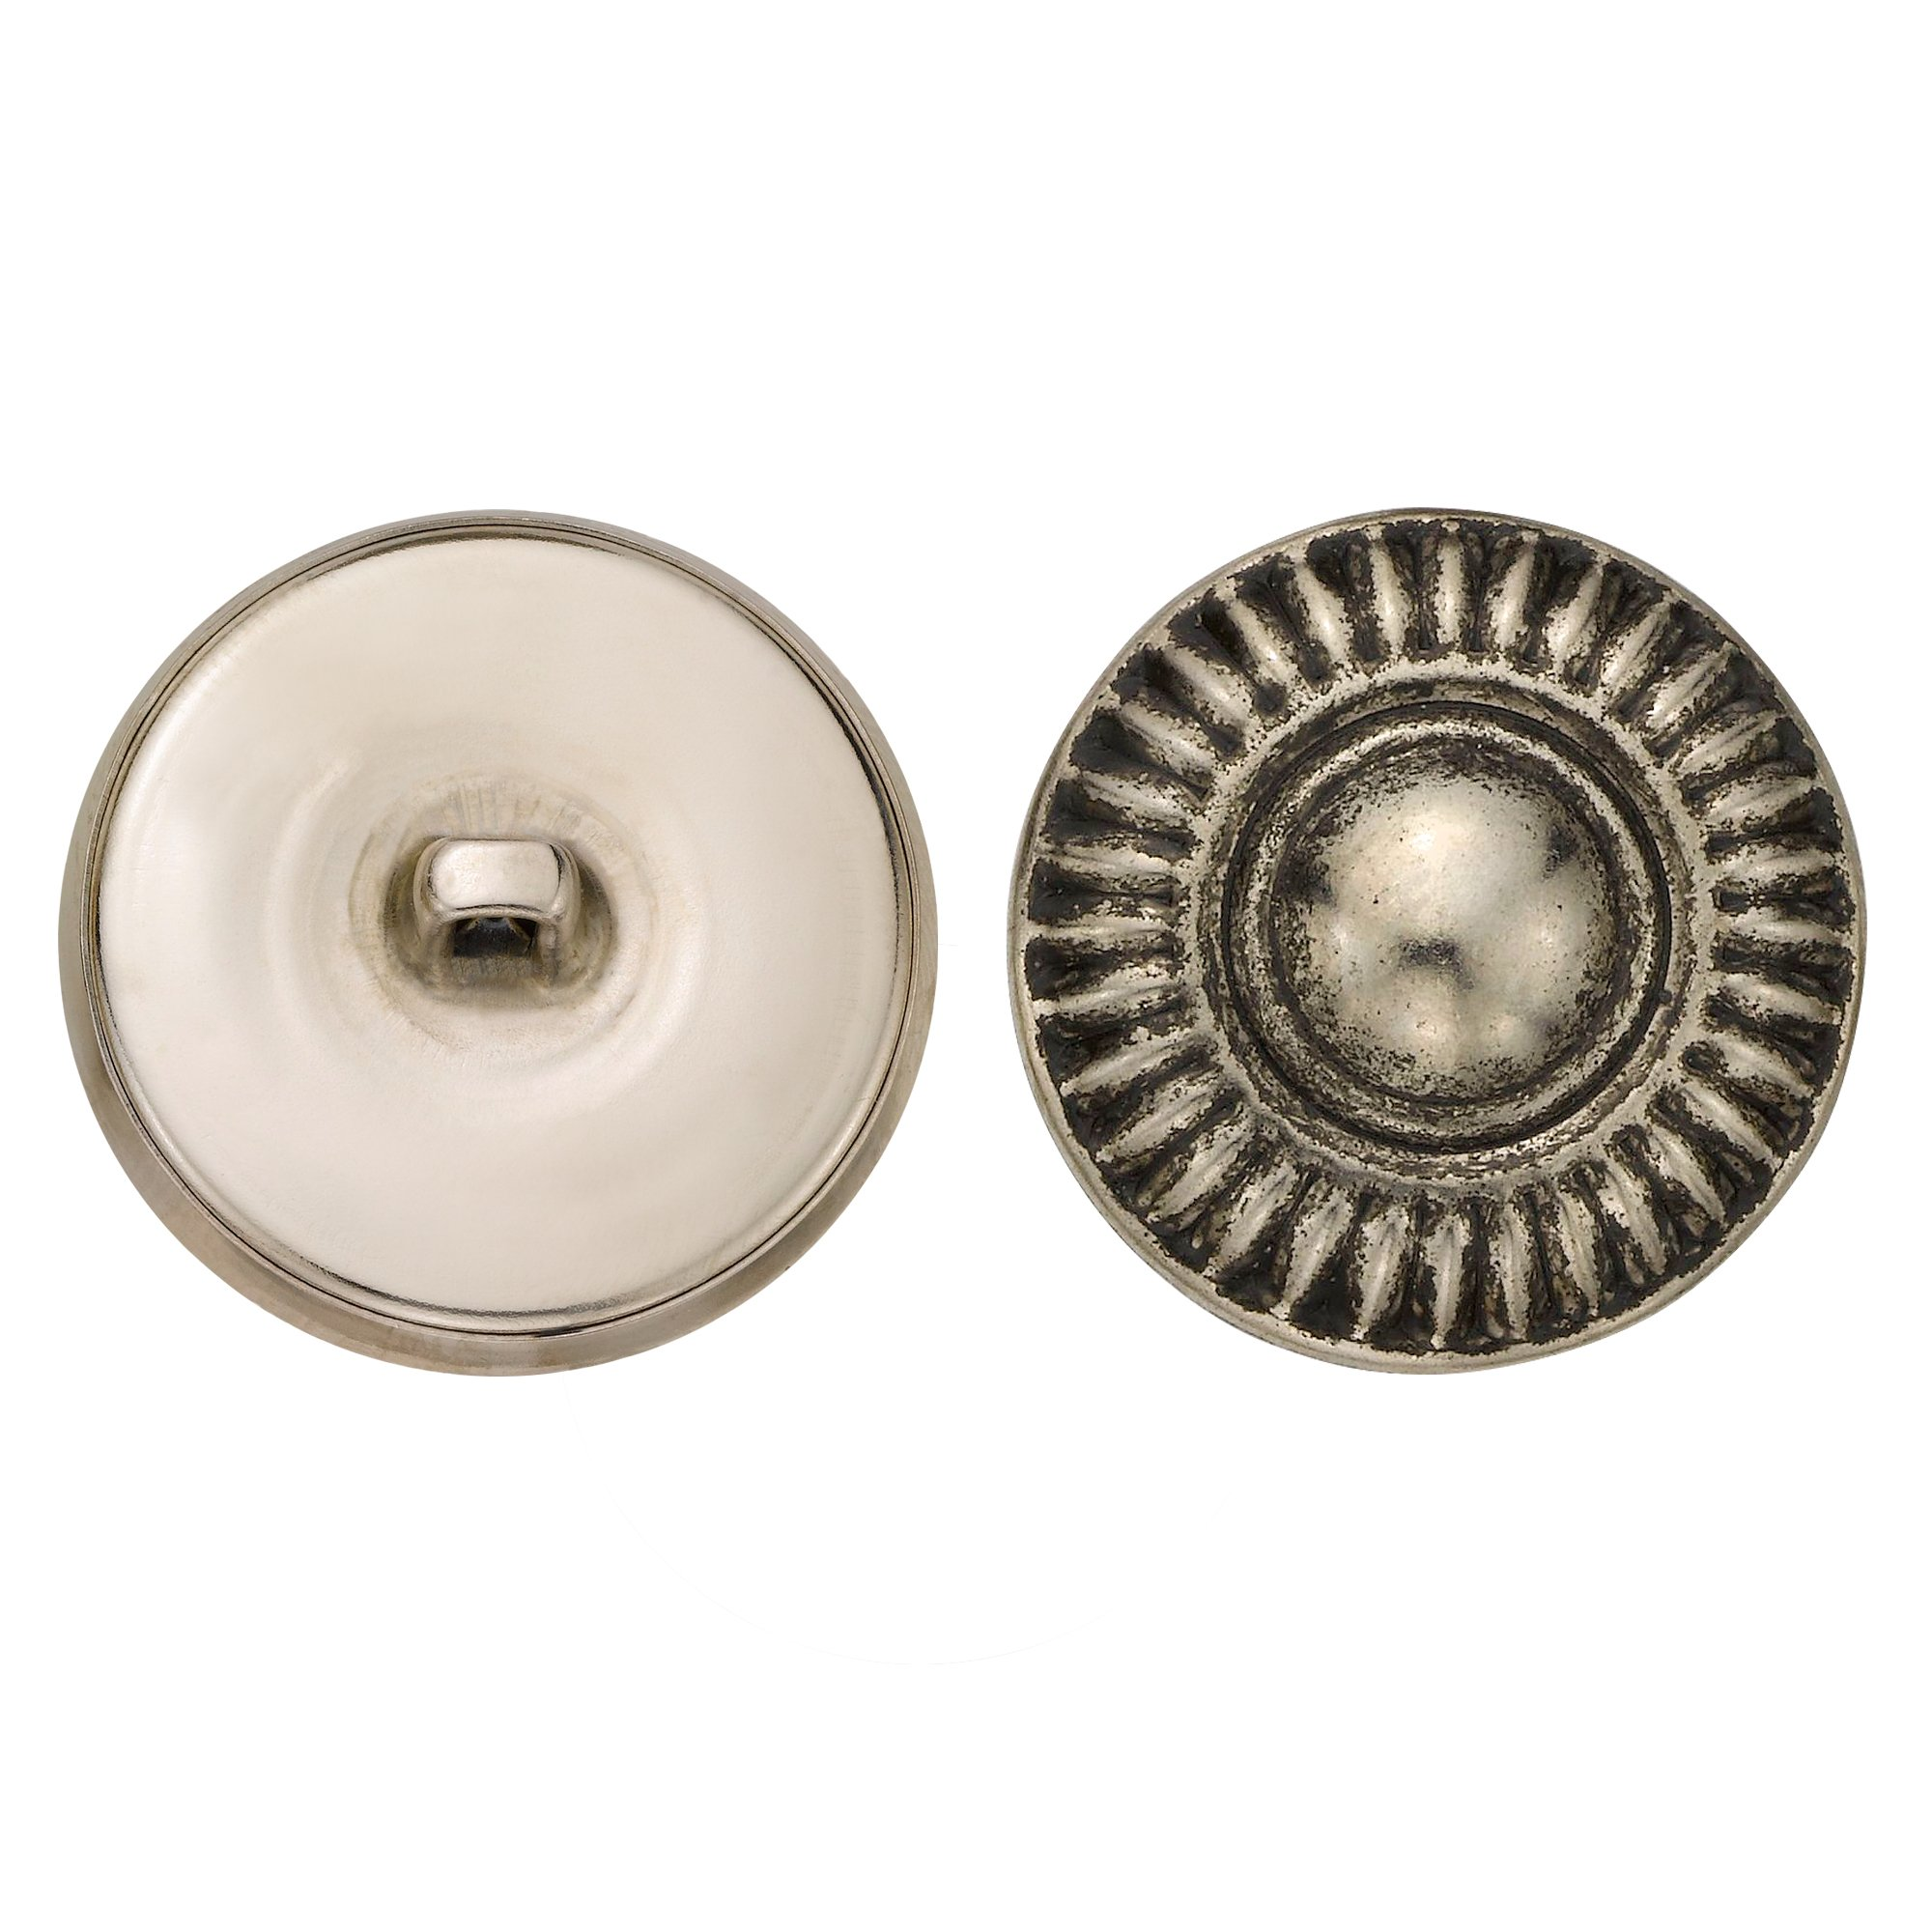 C&C Metal Products 5079 Modern Daisy Metal Button, Size 45 Ligne, Antique Nickel, 36-Pack